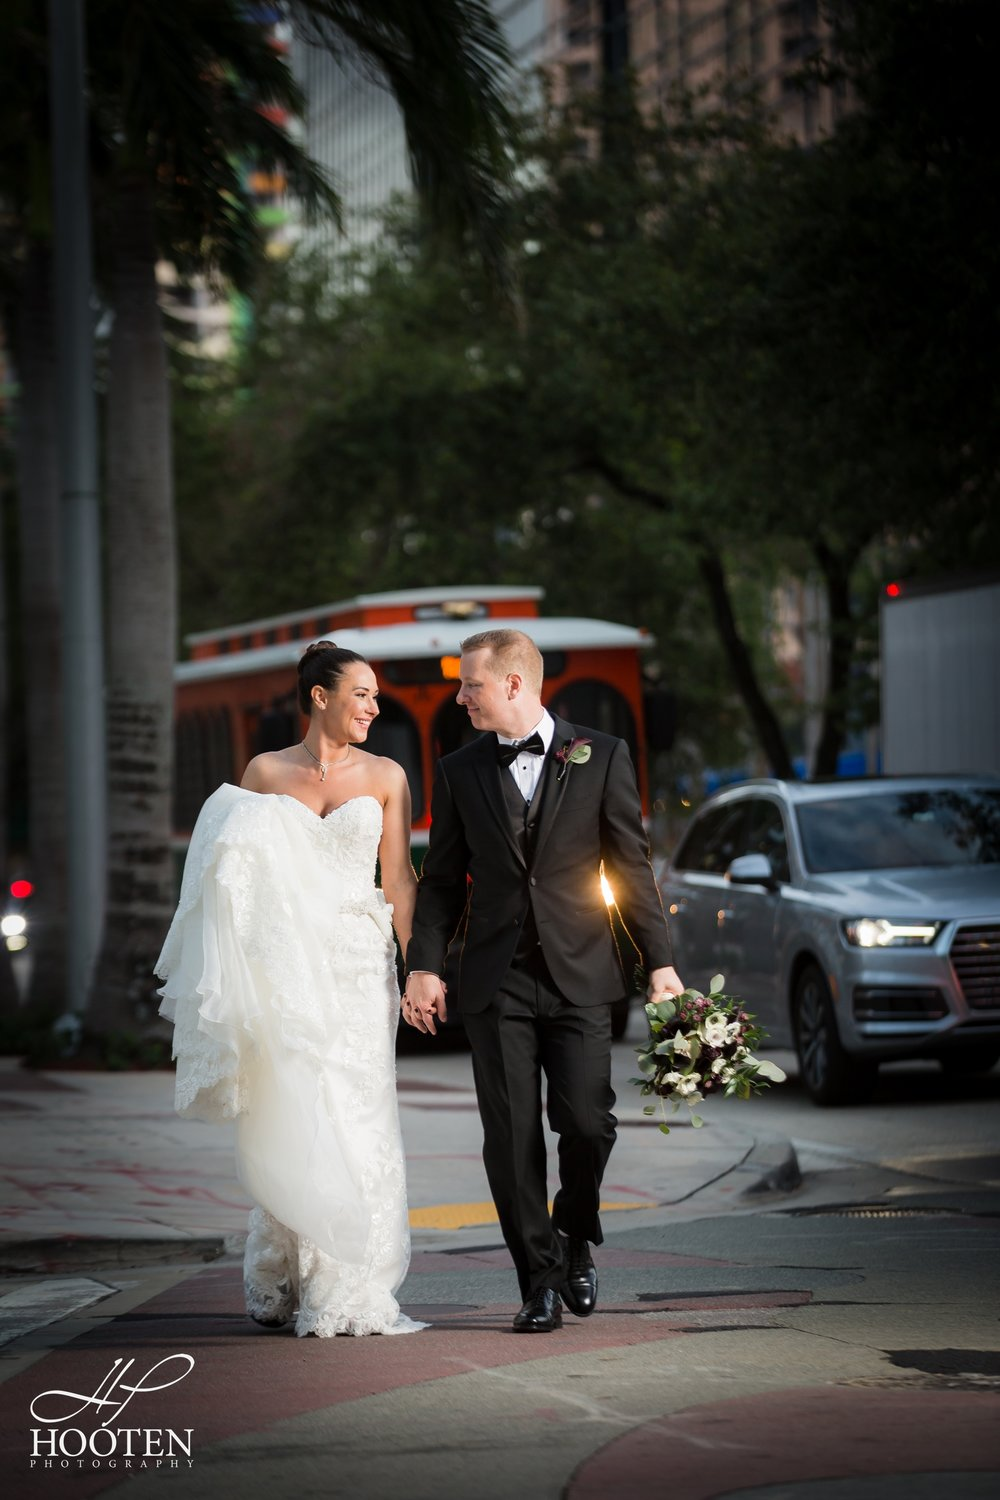 064.Conrad-Miami-Hotel-Wedding-Hooten-Photography.jpg